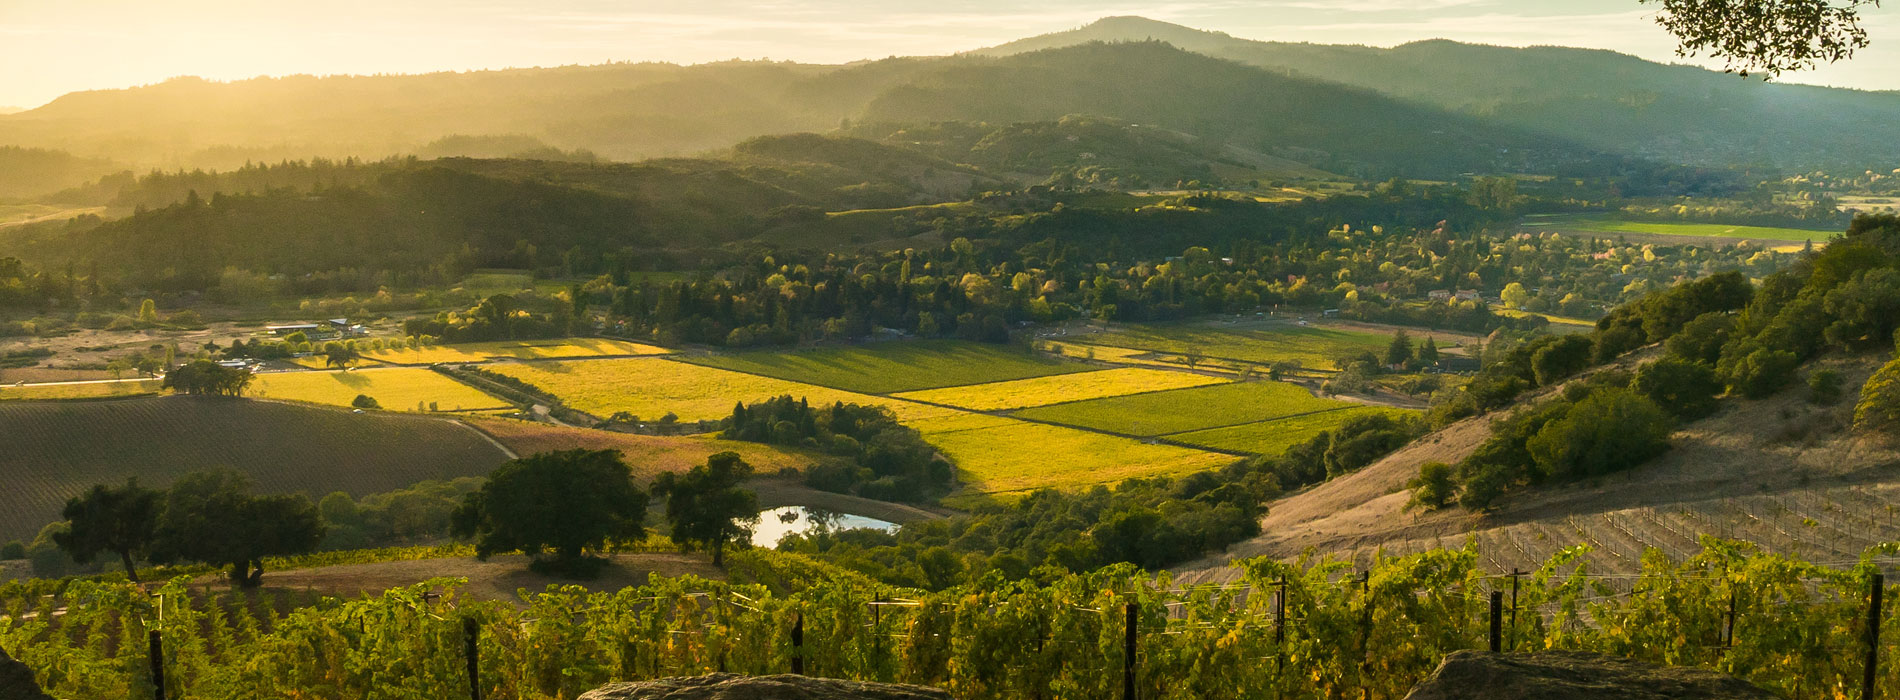 Home for Sale in Sonoma County | St Helena Real Estate